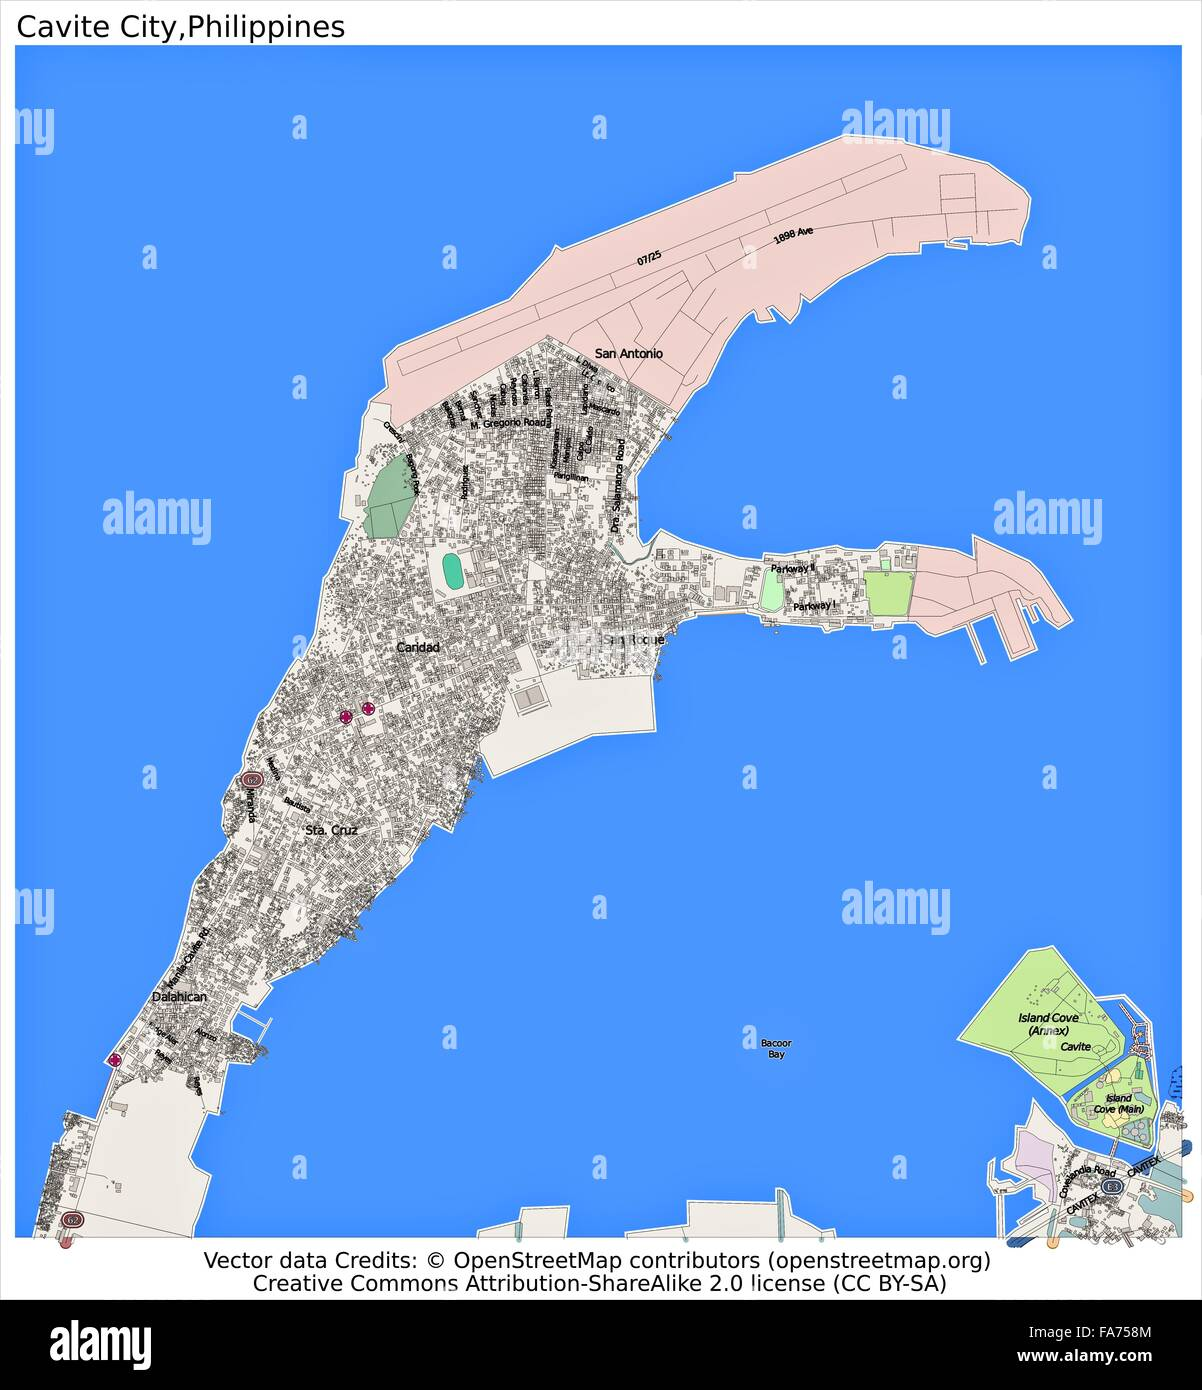 Cavite City Philippines Location Map Stock Photo 92356228 Alamy